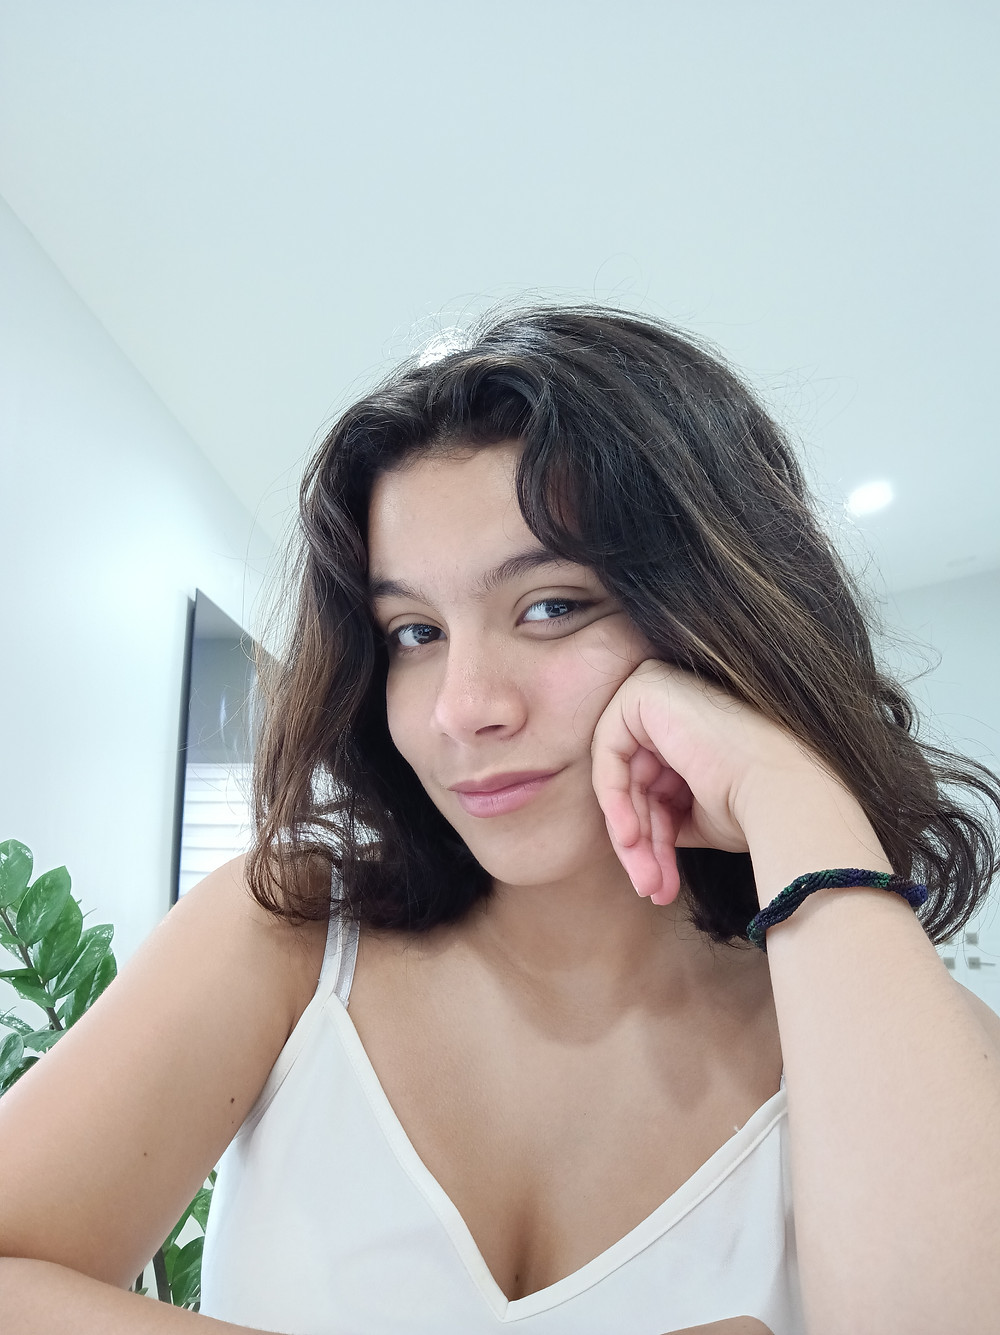 Amelie, a young latine person with shoulder length brown hair in a white tank top in a bright room, leaning against her hand looking at the camera.